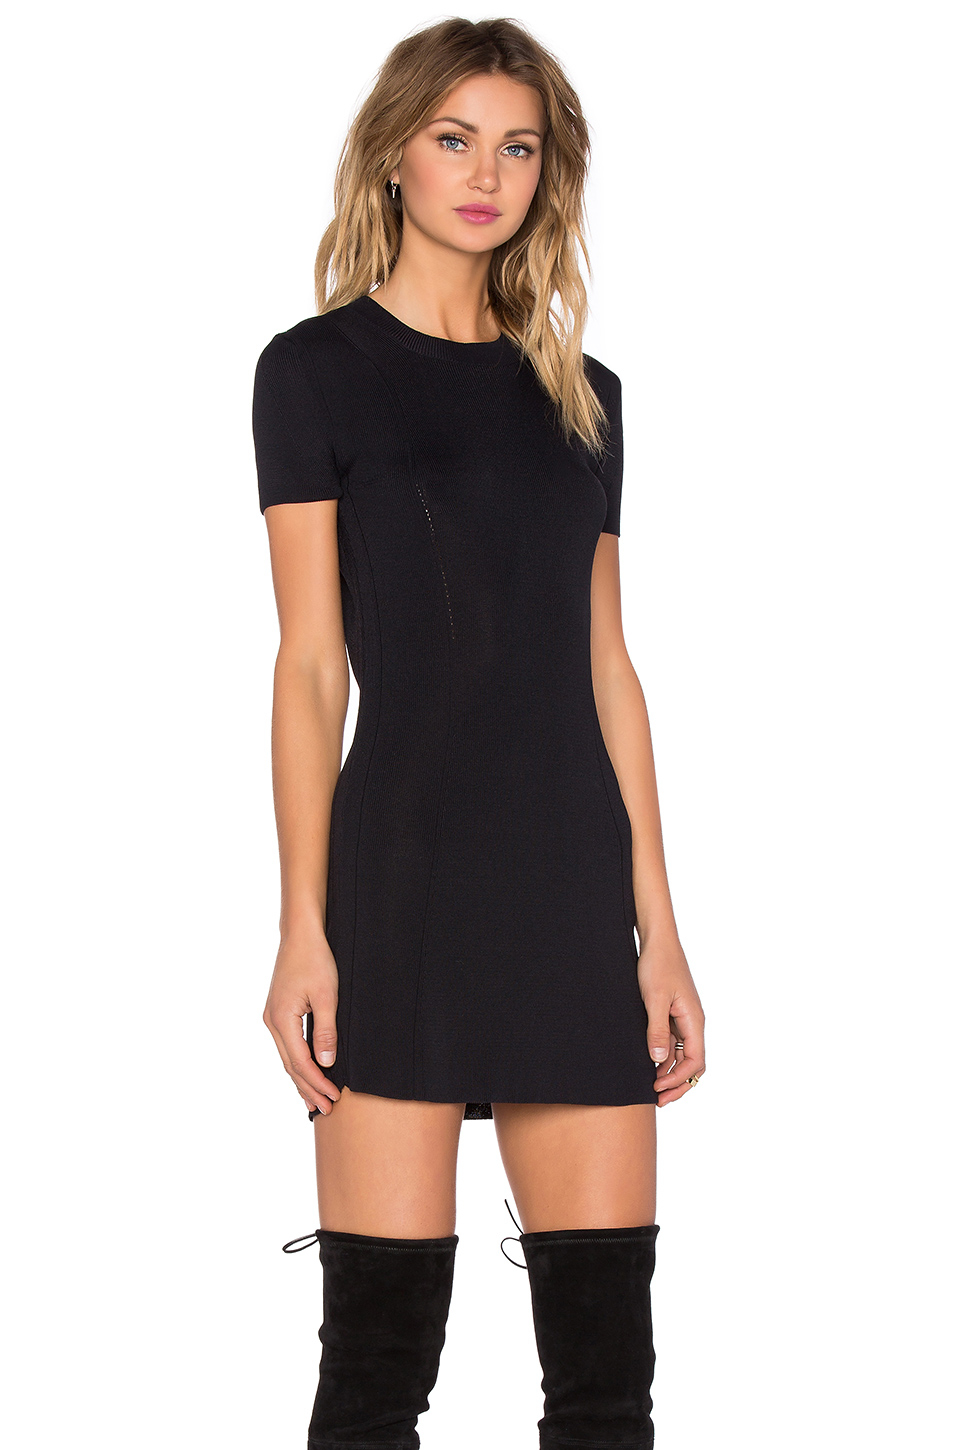 Black Short Mini Dresses | Dress images